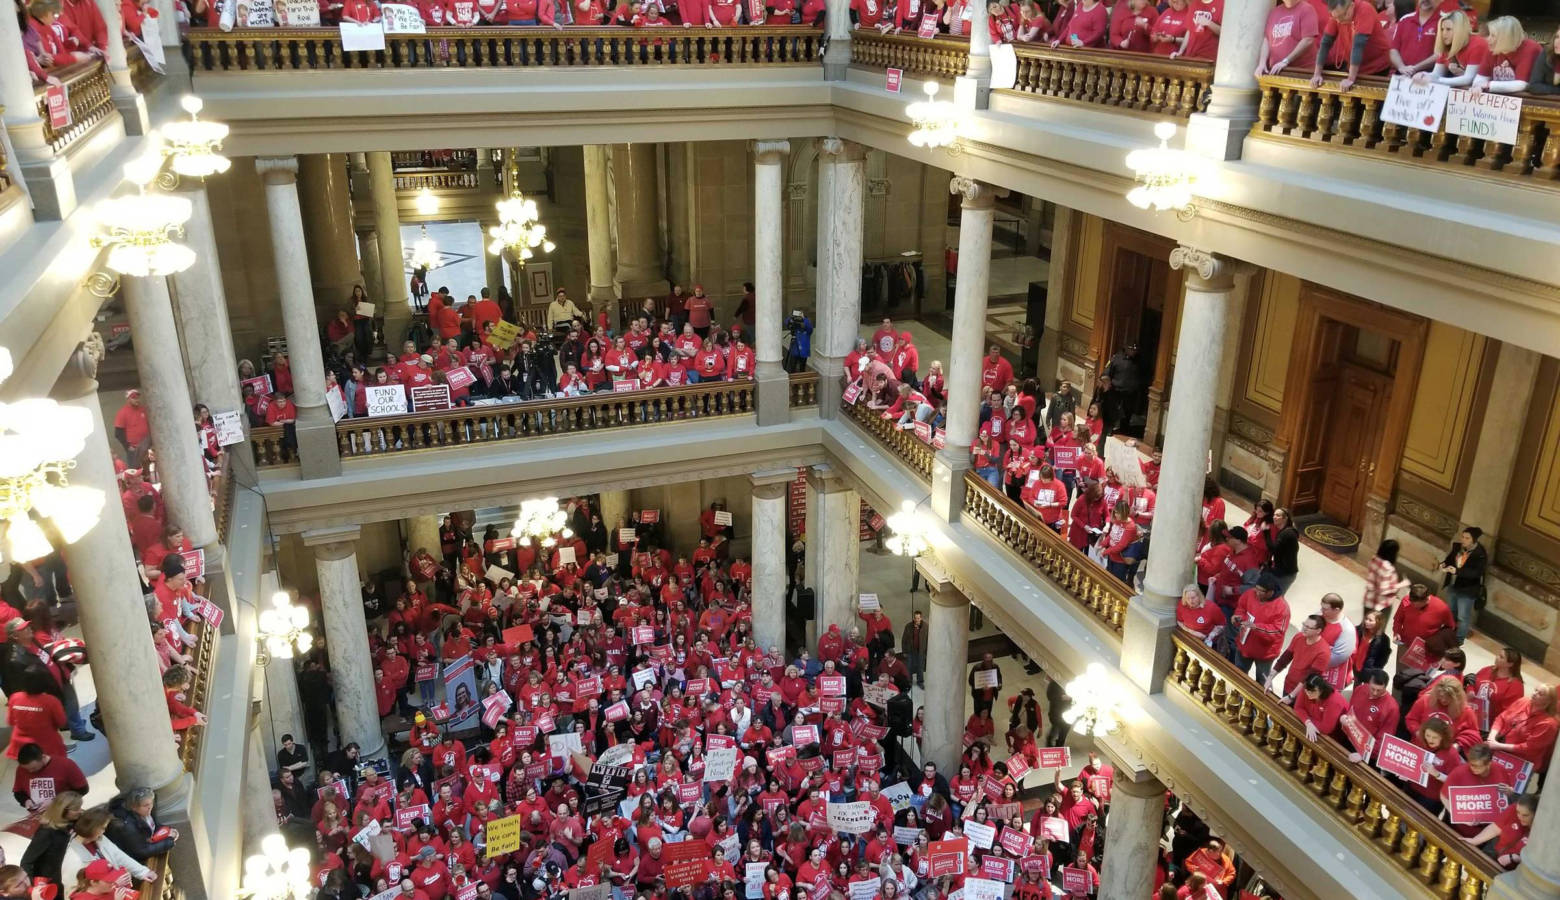 Teachers rally at the statehouse in March 2019. (Jeanie Lindsay/IPB News)